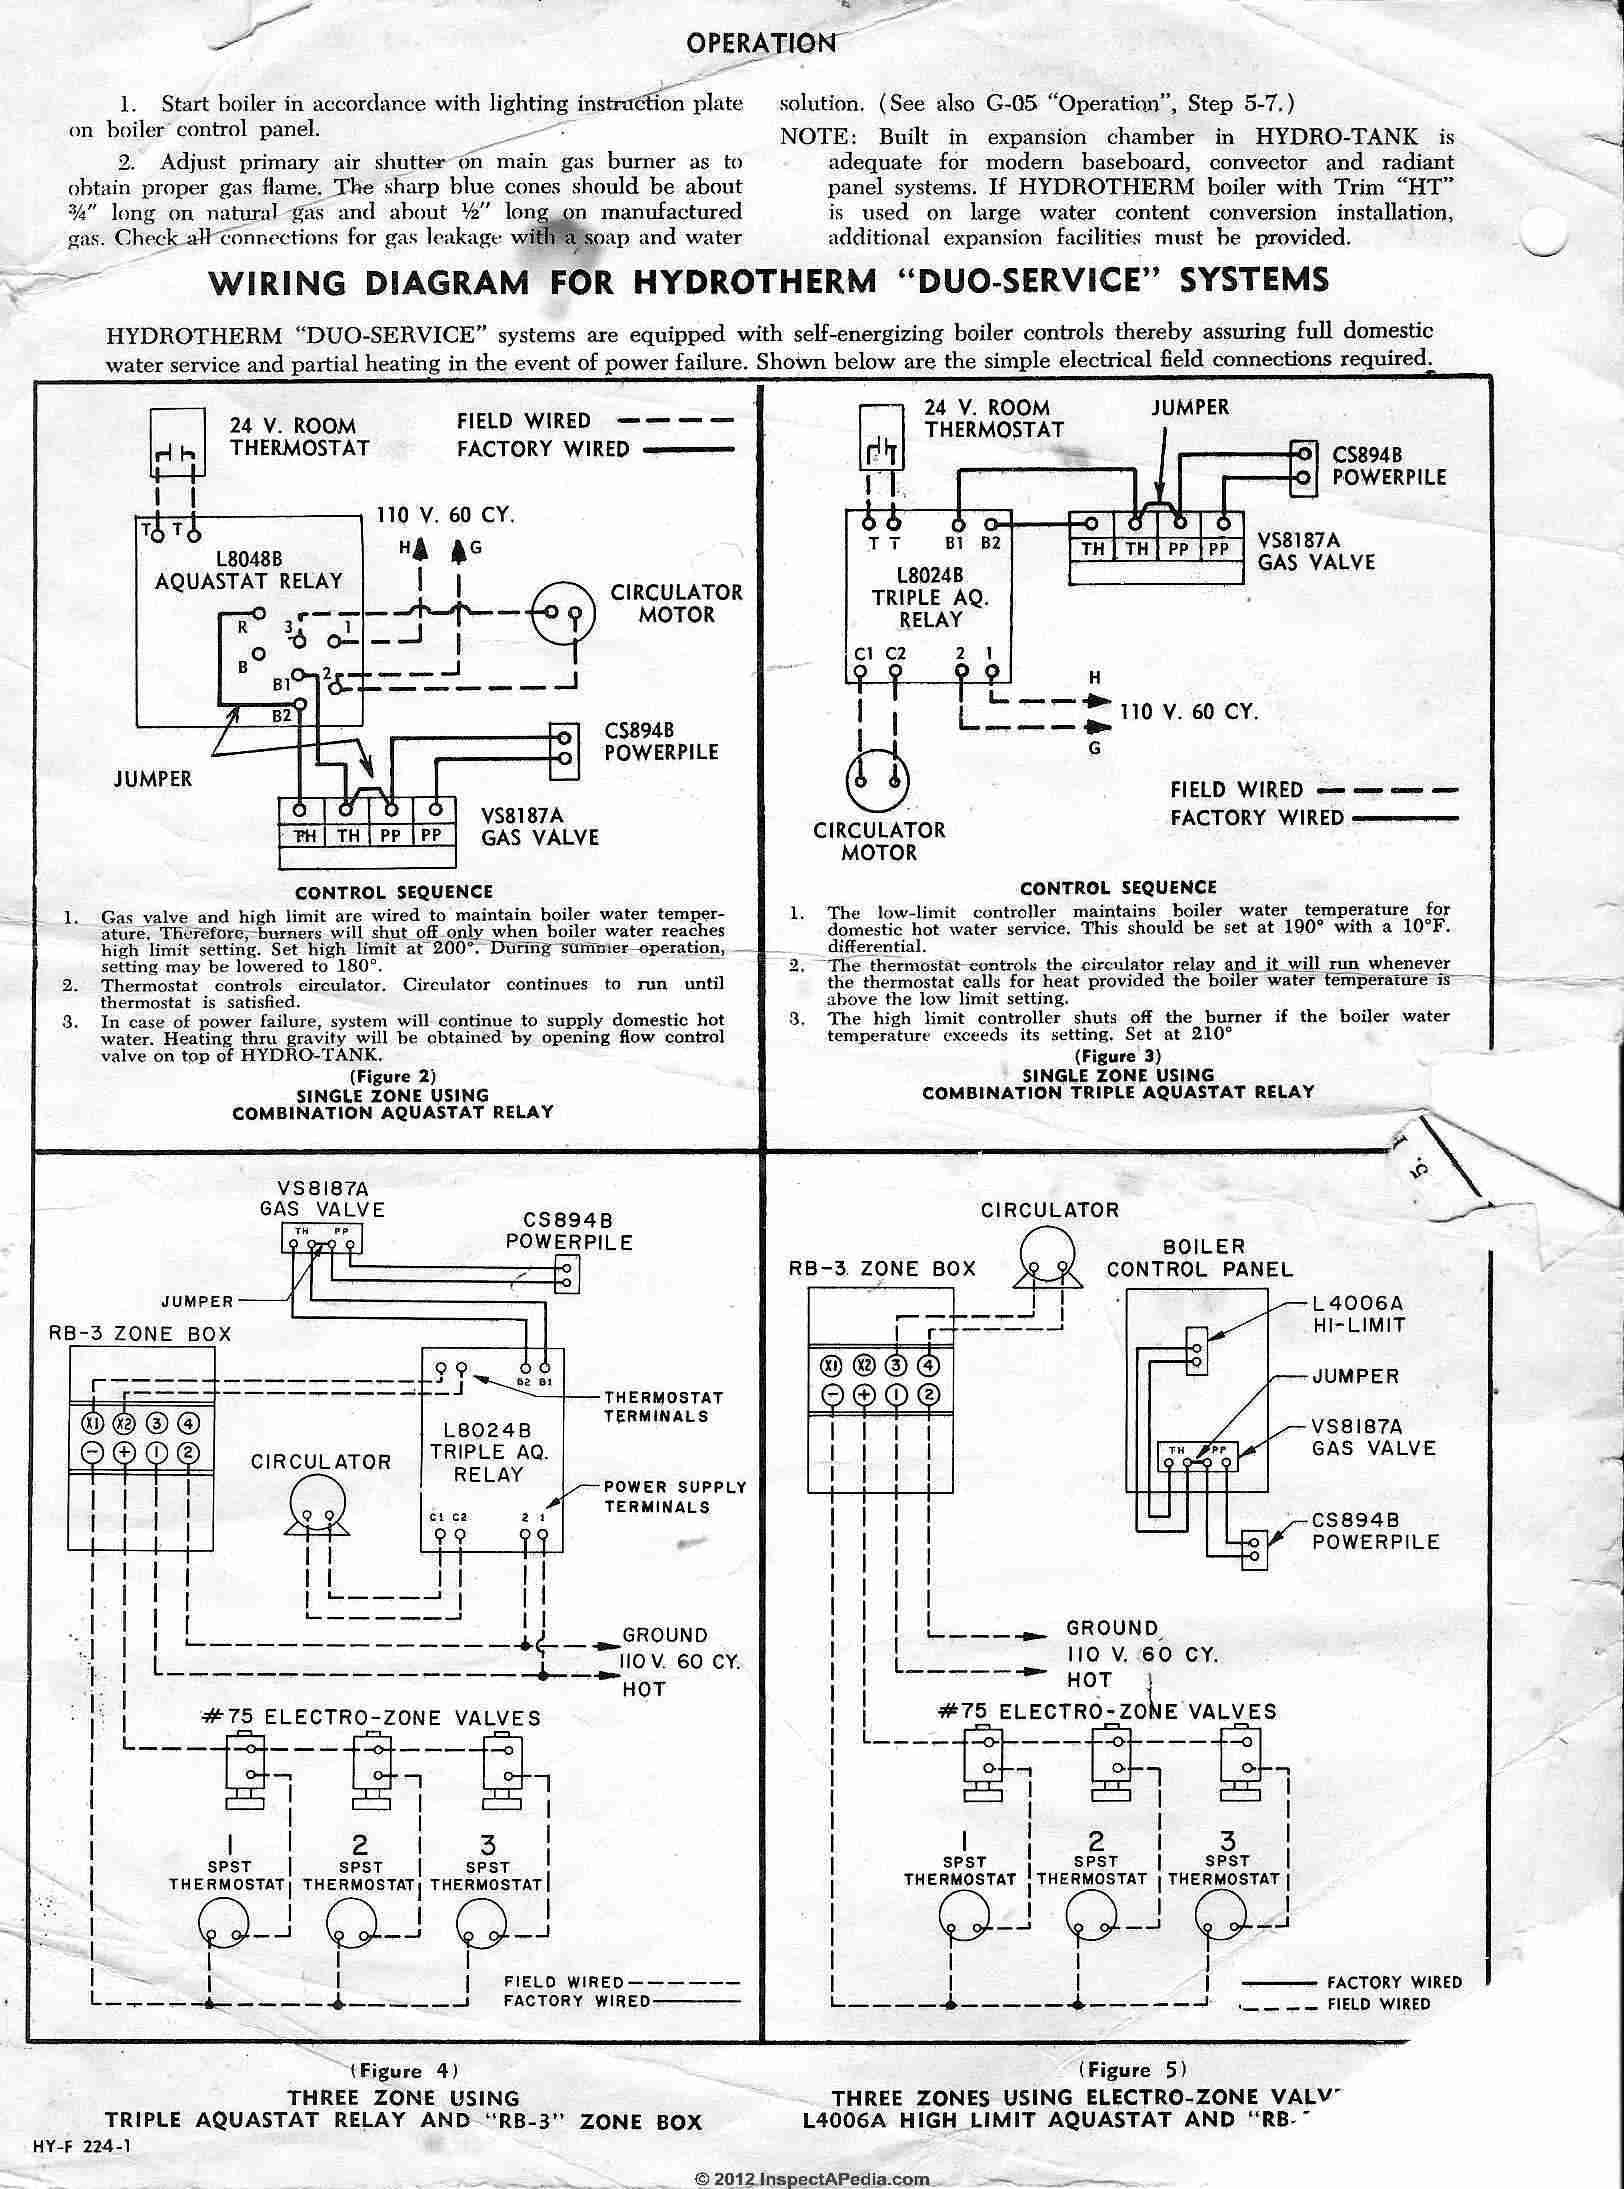 honeywell l8024b aquastat wiring instructions